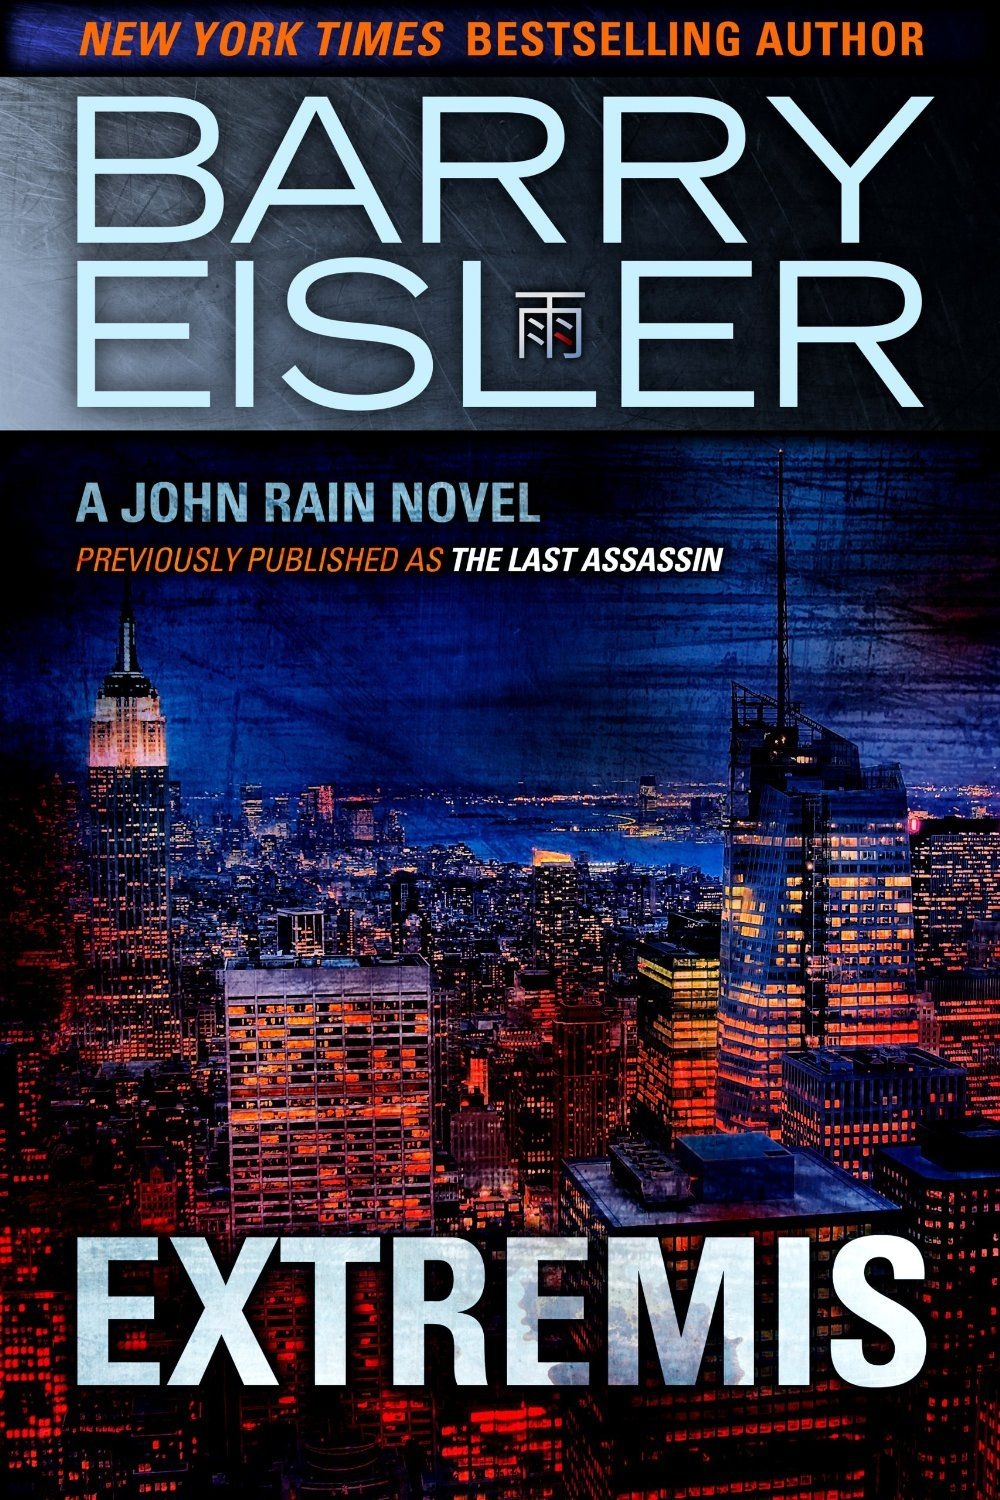 Extremis previously published as The Last Assassin, by Barry Eisler ($3.99)